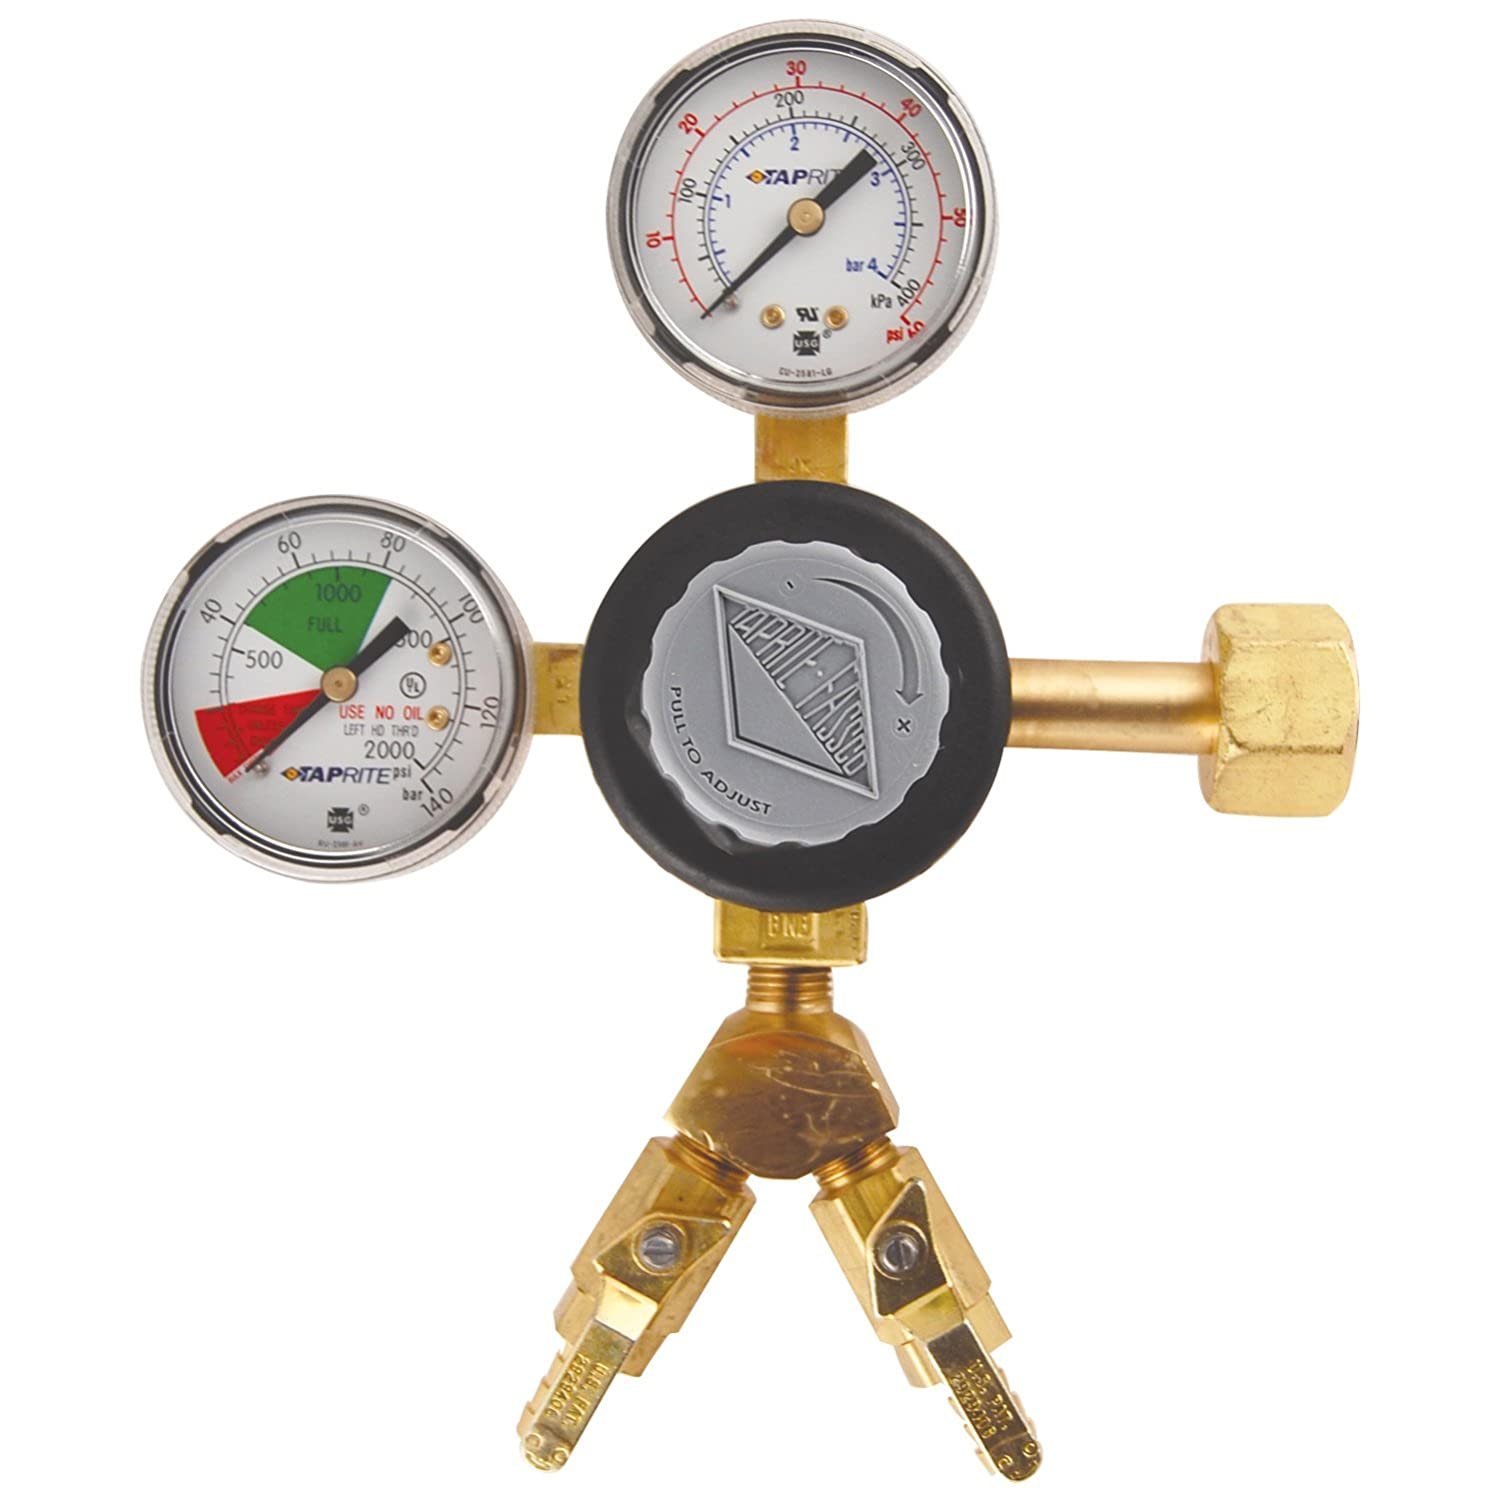 Brass Taprite CGR263 2 Product High Volume Primary CO2 Regulator-Polycarbonate Body